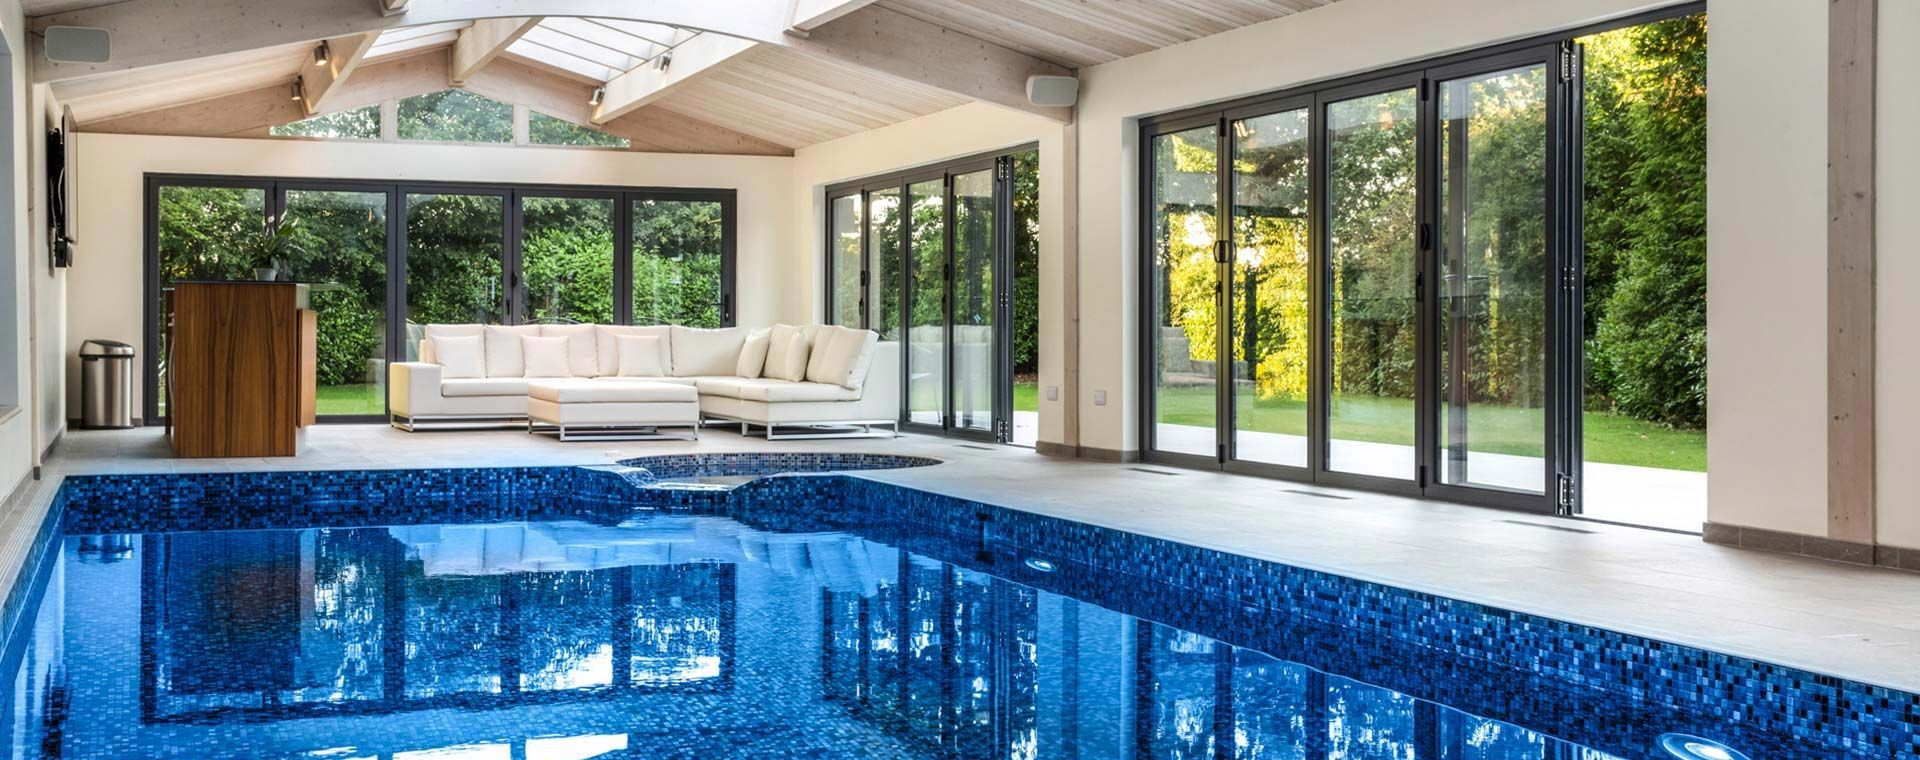 Pin On Glass Pool Cover